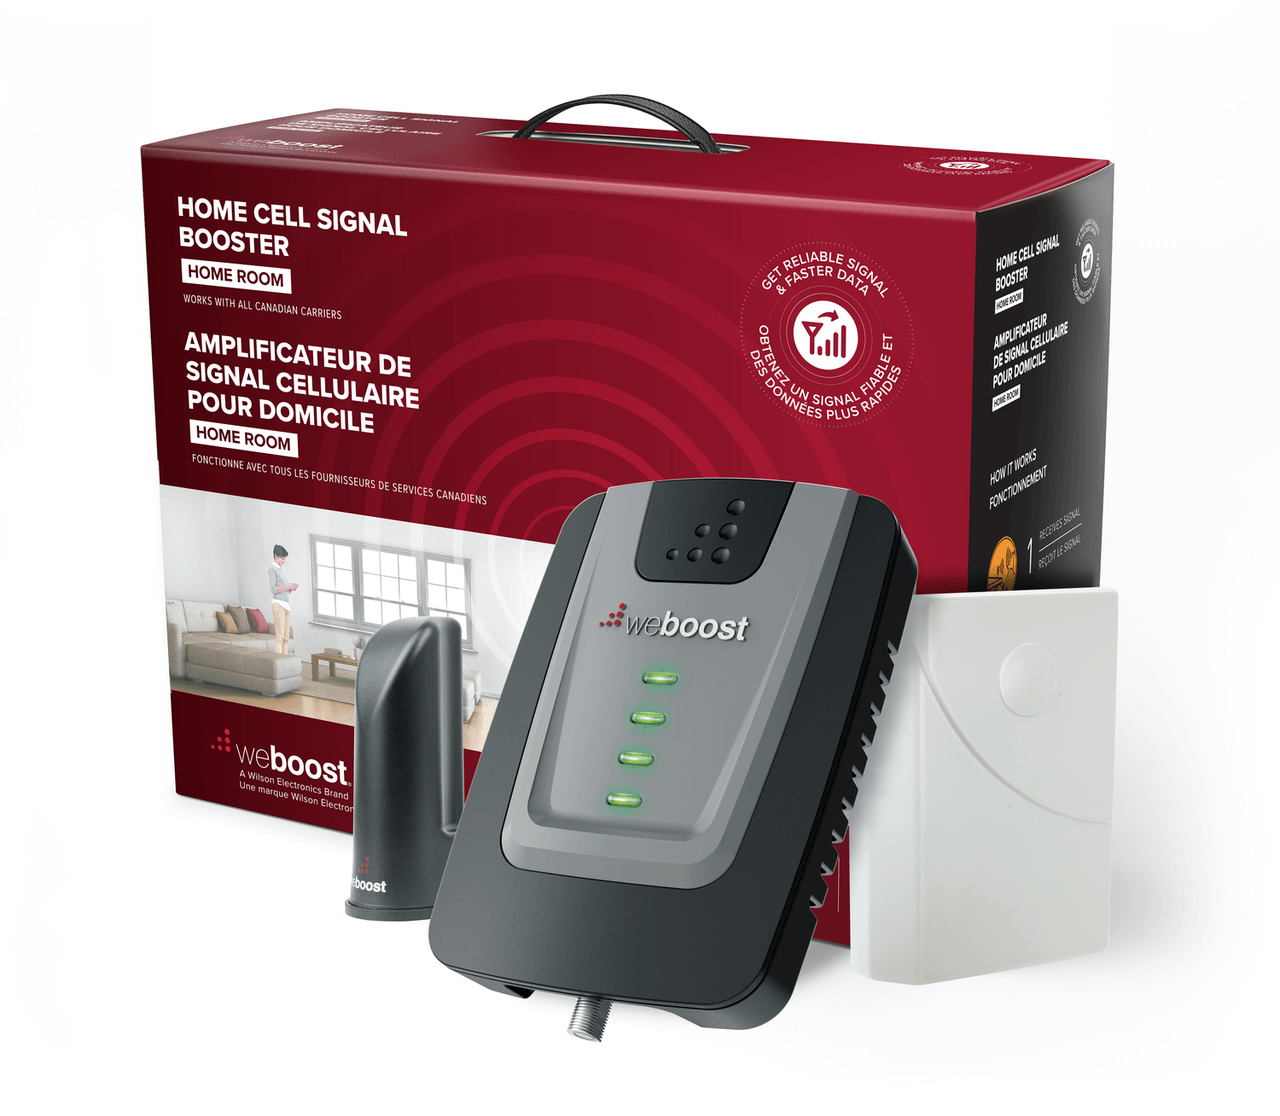 weBoost - Ensemble amplificateur de signal cellulaire weBoost Home Room - 652120